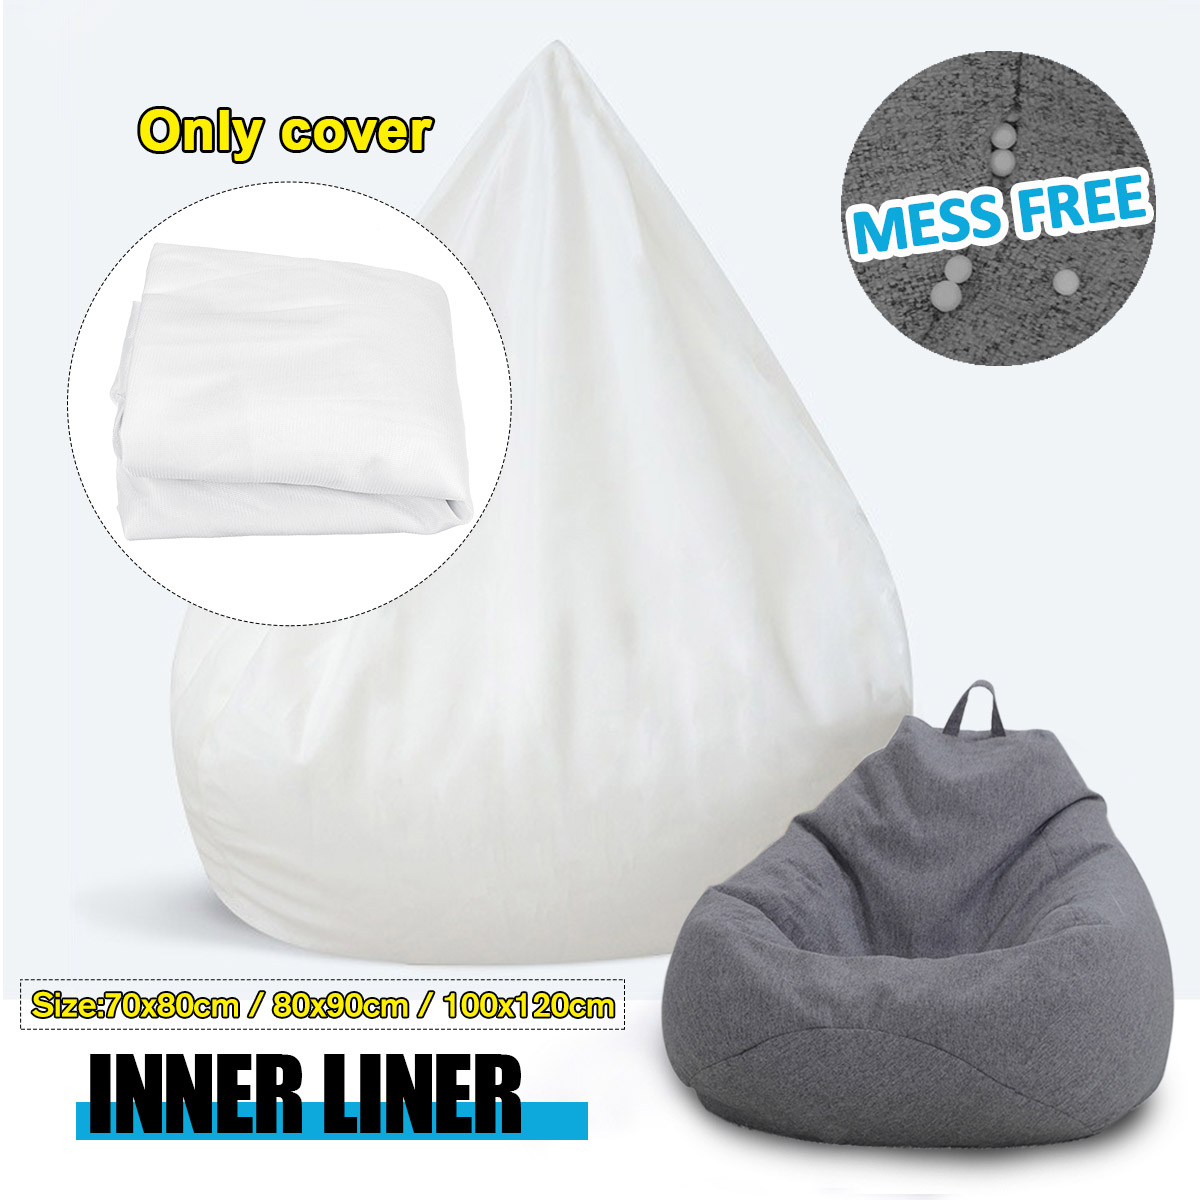 Waterproof Lazy BeanBag Sofas Inner Lining Cloth Suitable For Bean Bag Cover And Stuffed Animal Toy Upgraded Version Only Cover